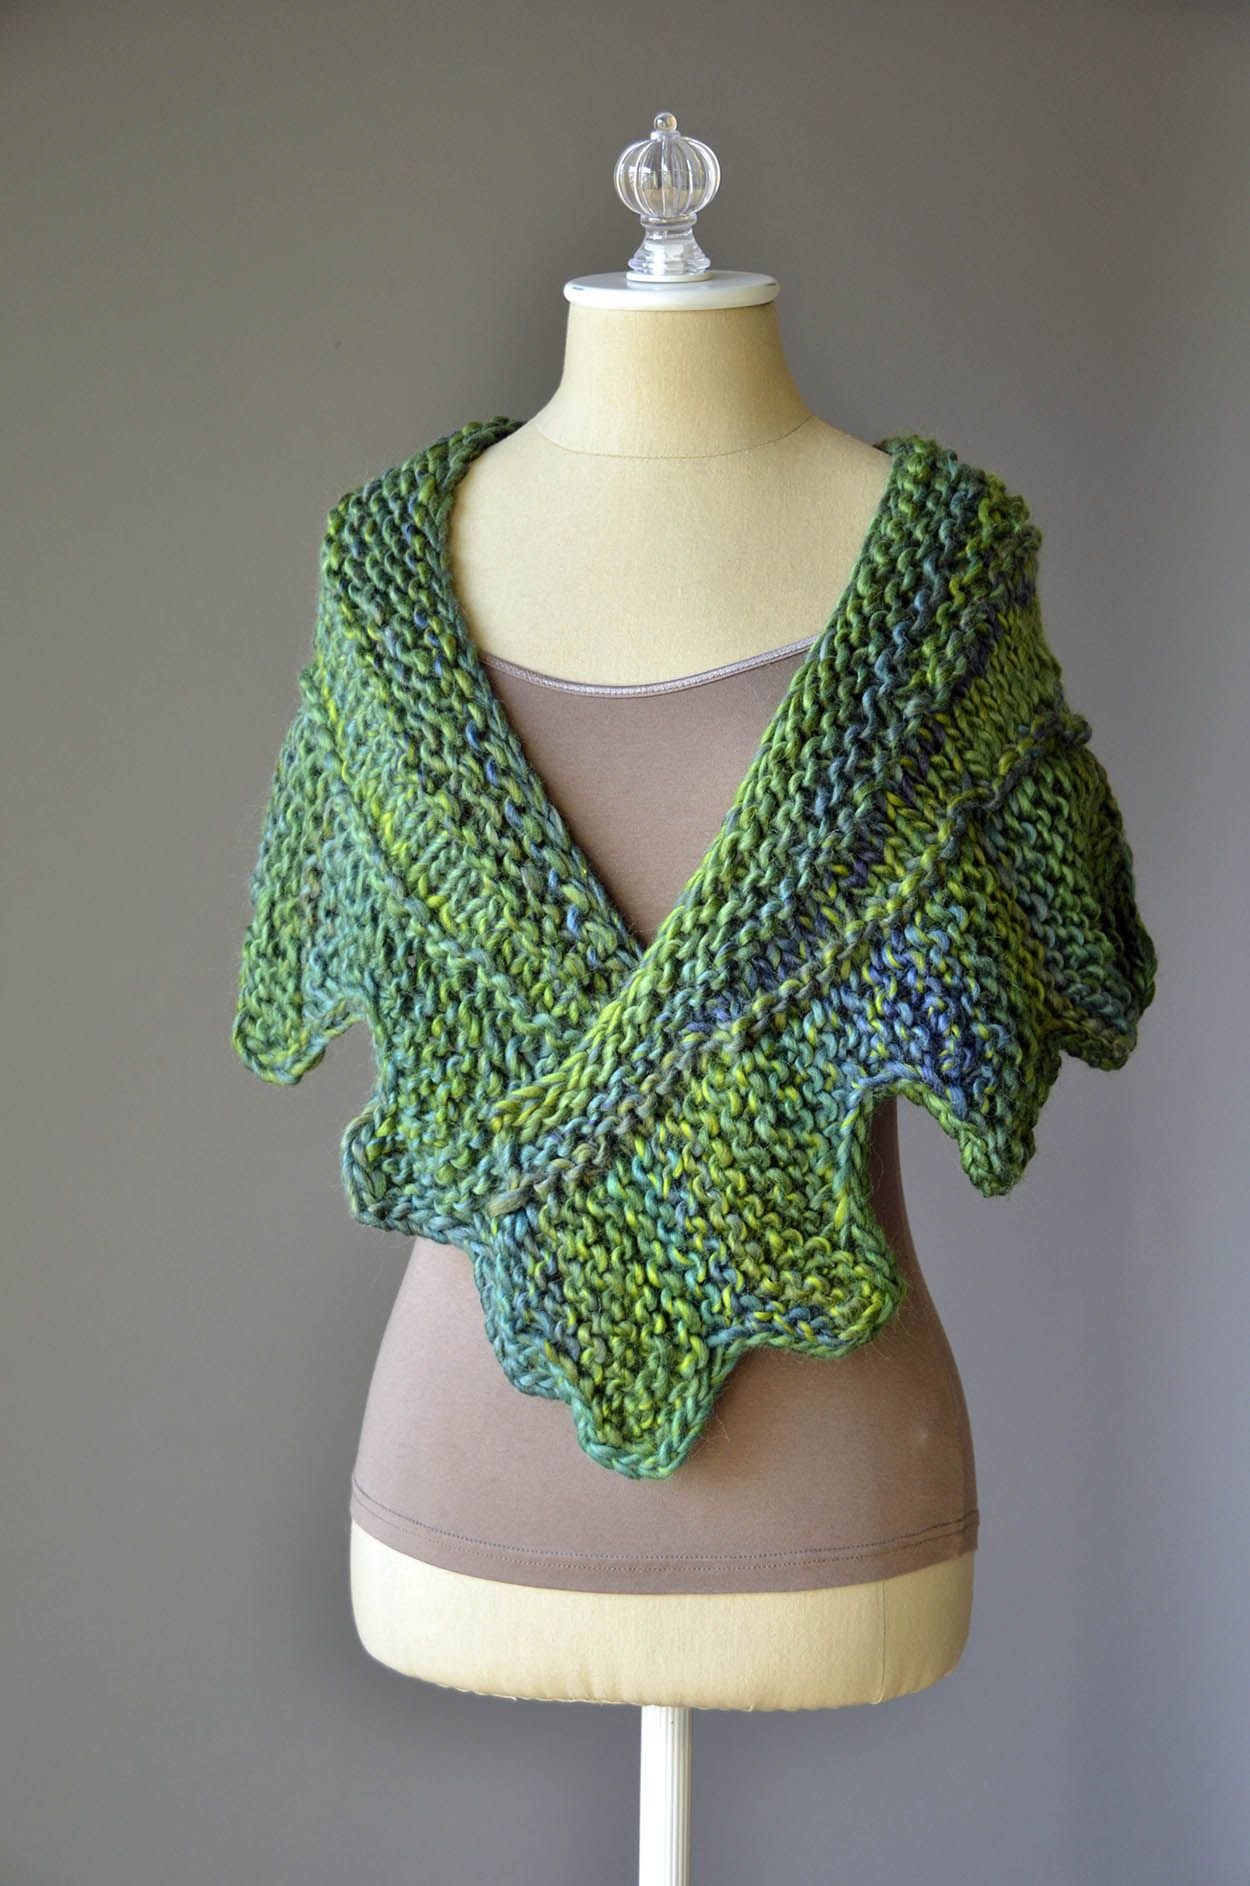 Free Knitting Pattern!  The Cog Shawlette in Classic Shades Big Time.